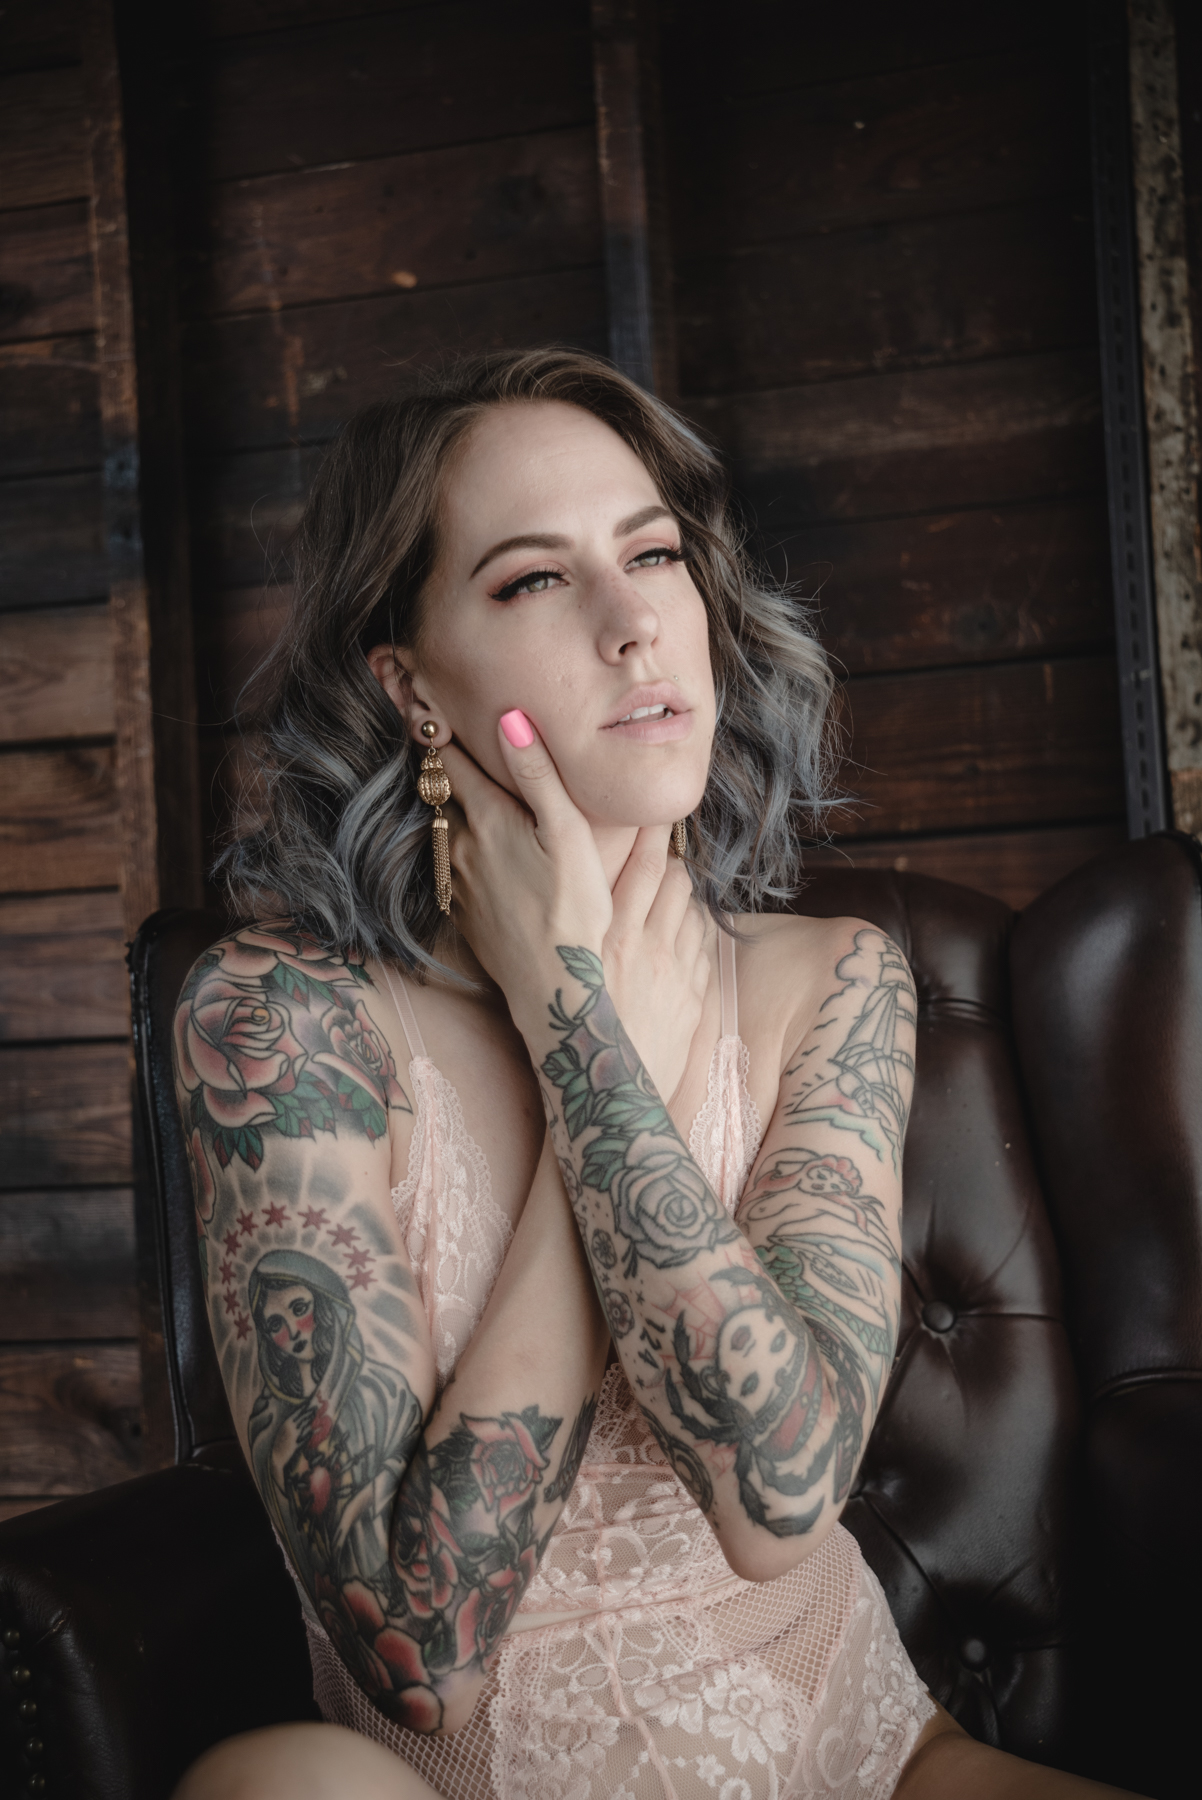 a portrait of Christina wearing a pink lace bodysuit sitting in a faux leather brown arm chair in front of a rough garage wooden wall.